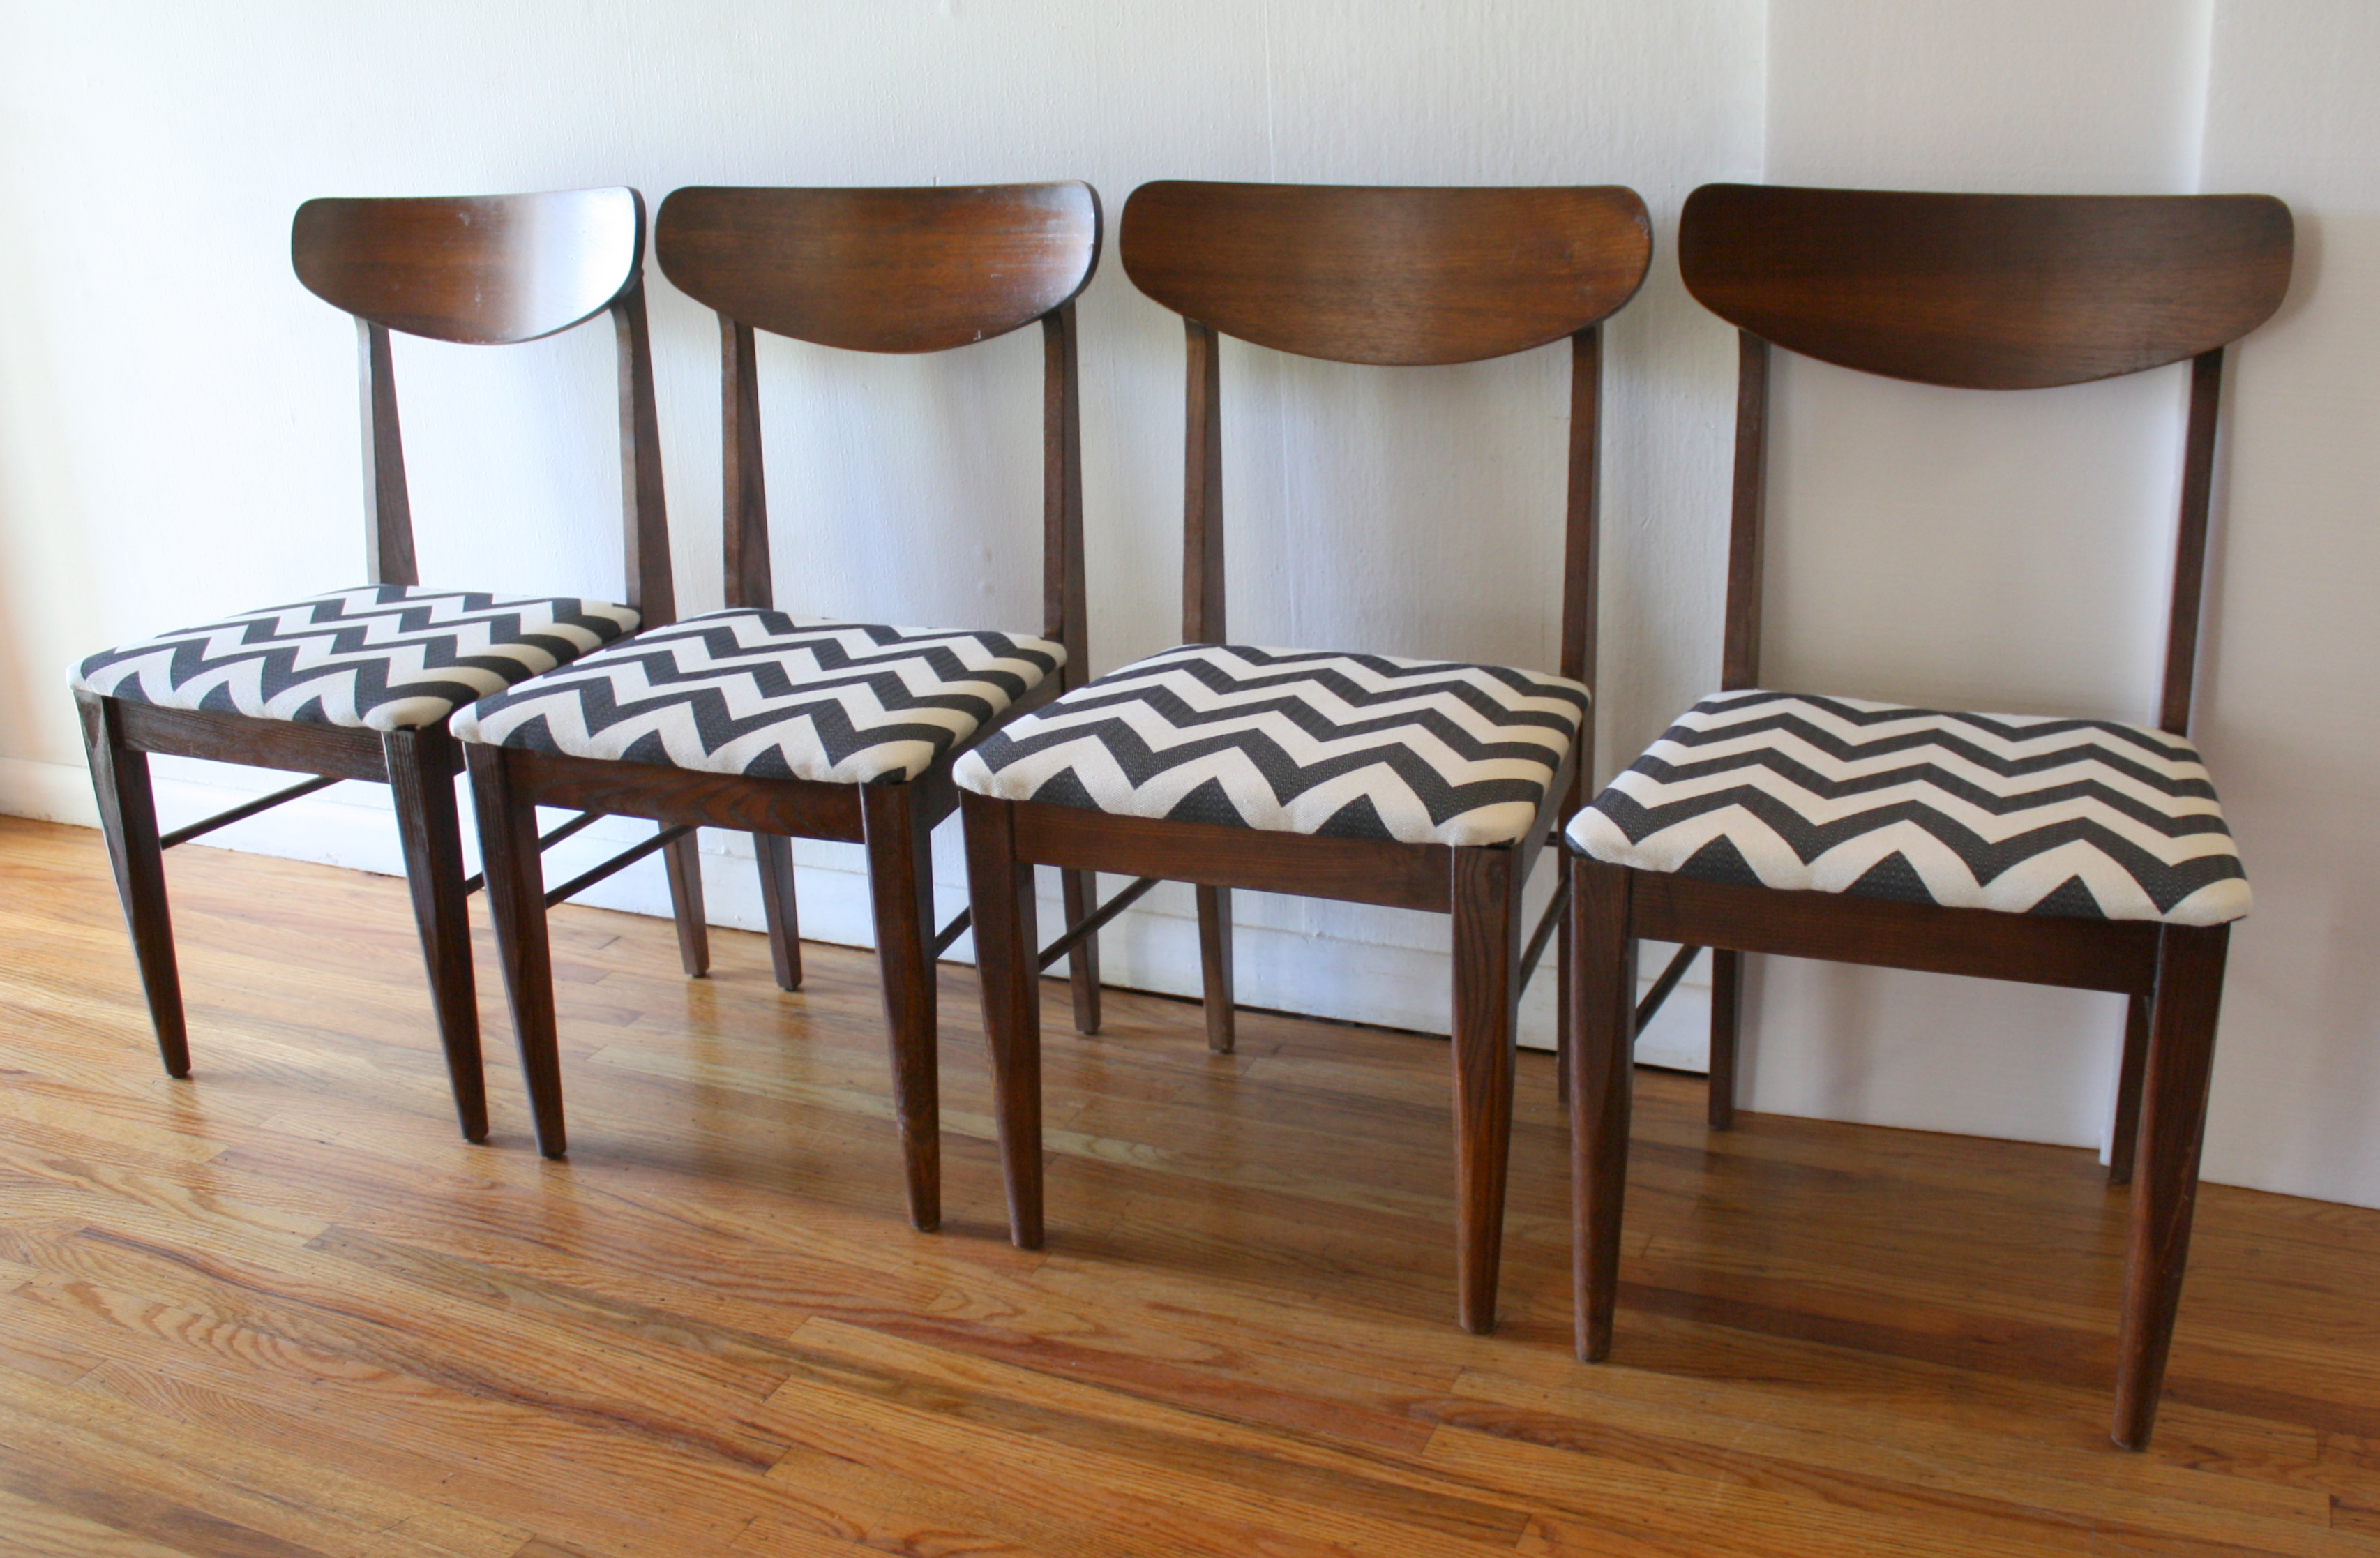 Pleasing Mcm Dining Chair Set Of 4 Black And White Chevron 2 Picked Bralicious Painted Fabric Chair Ideas Braliciousco